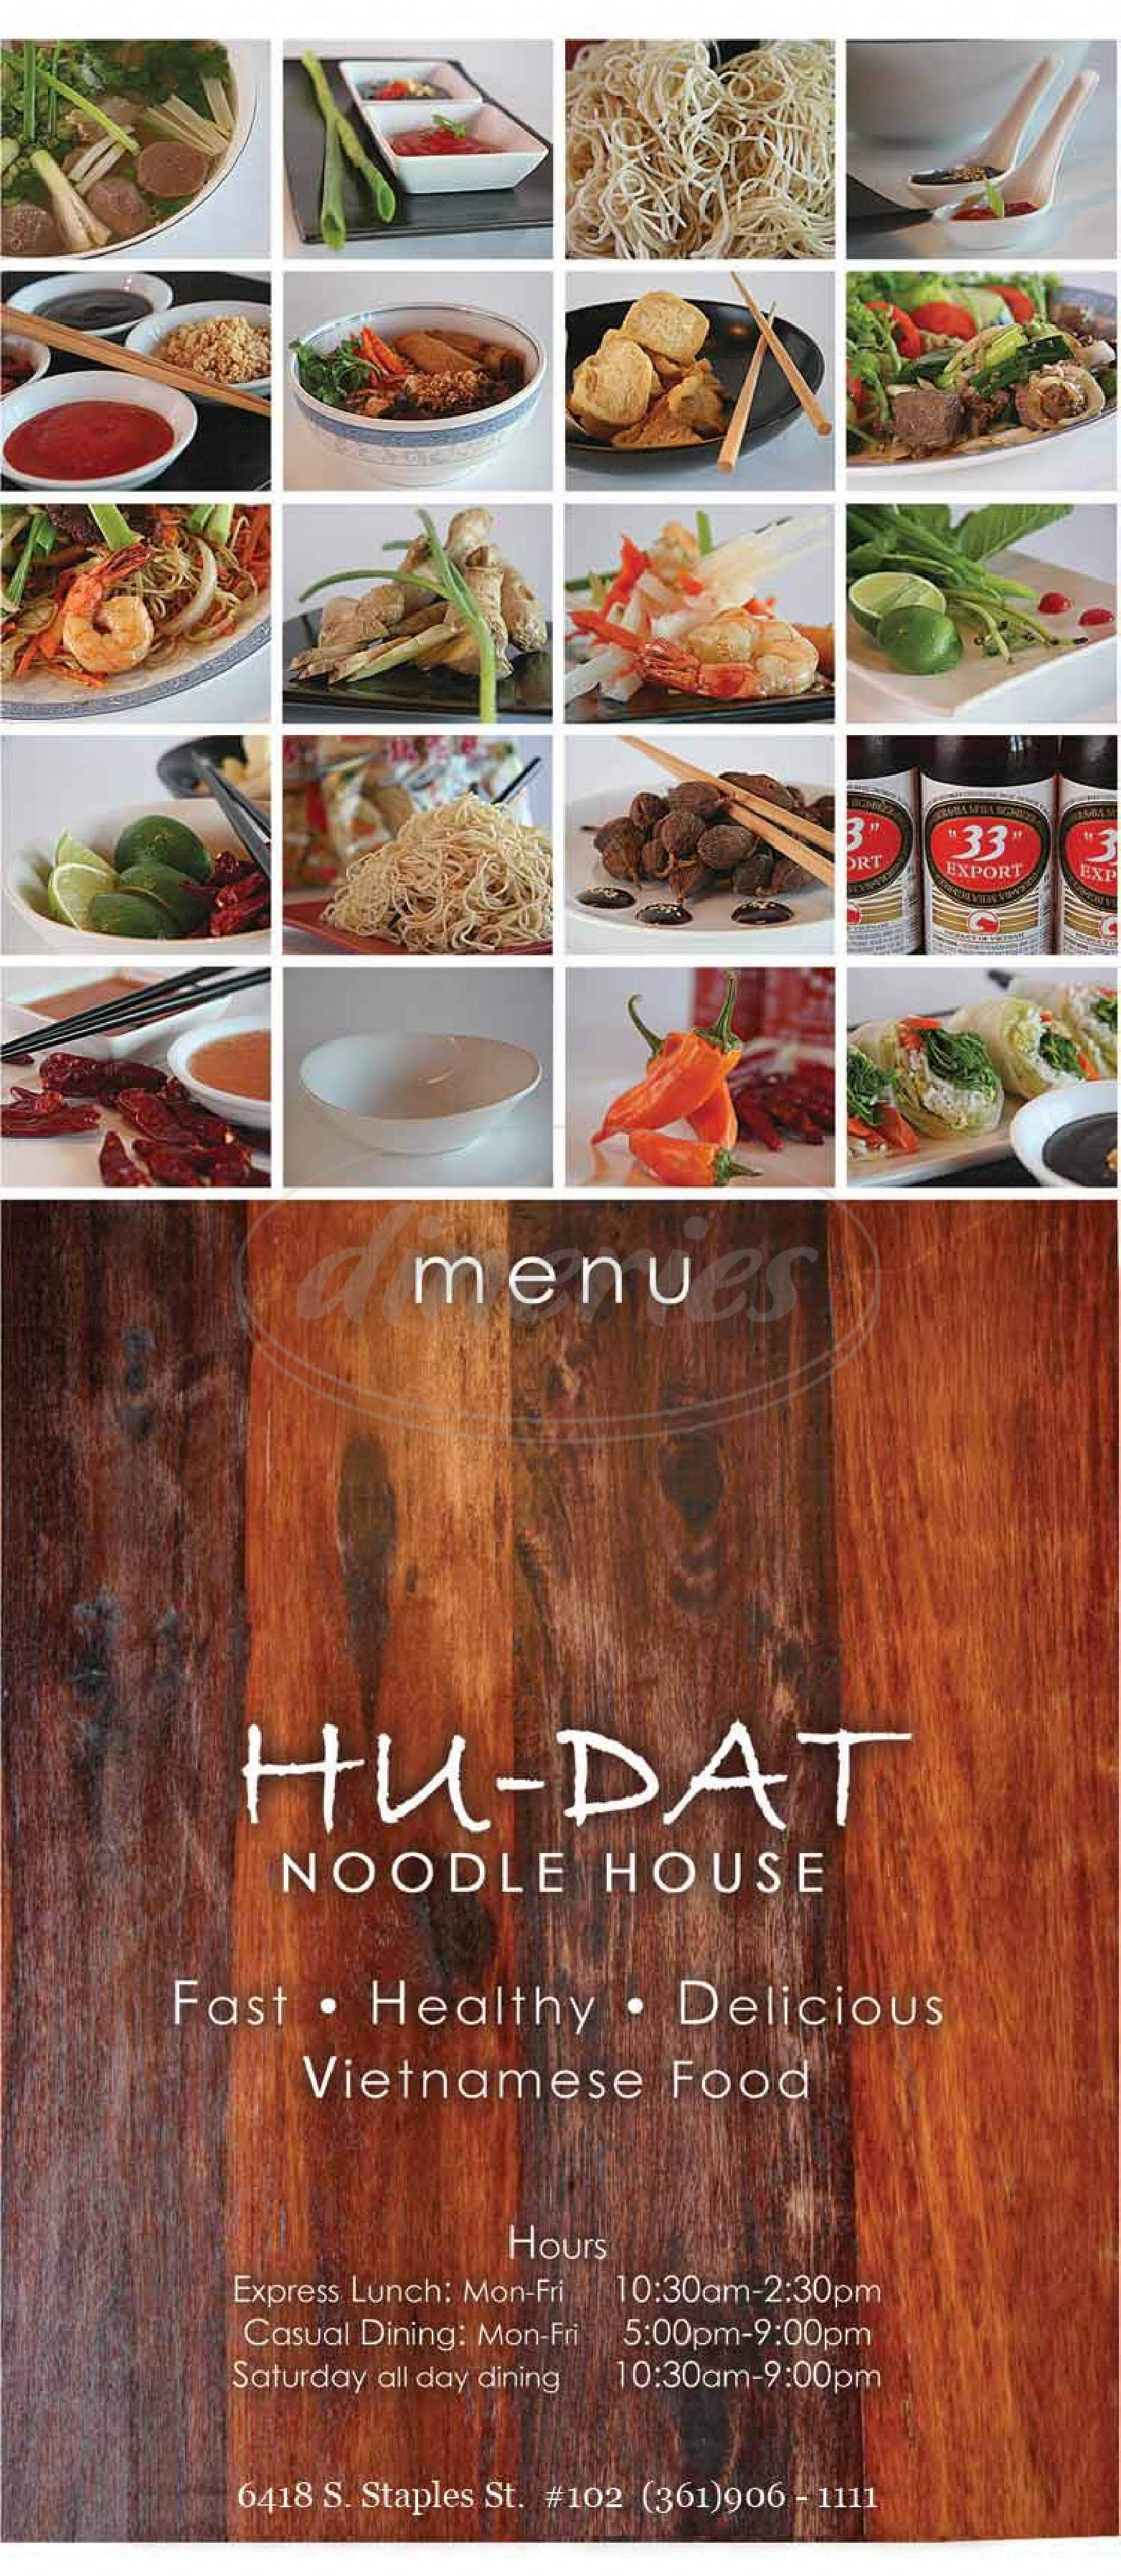 menu for Hu-Dat Noodle House